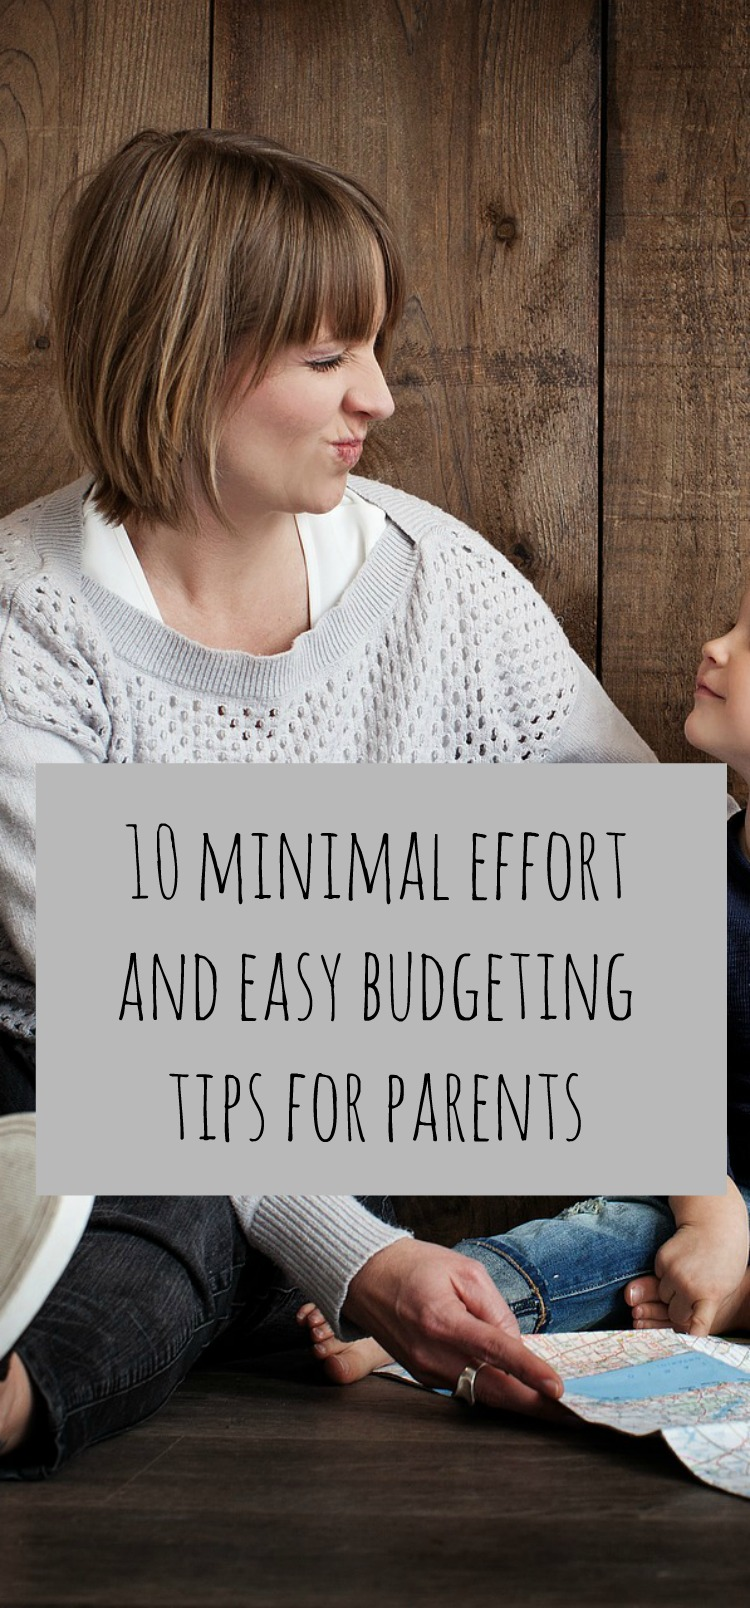 budgeting tips for parents